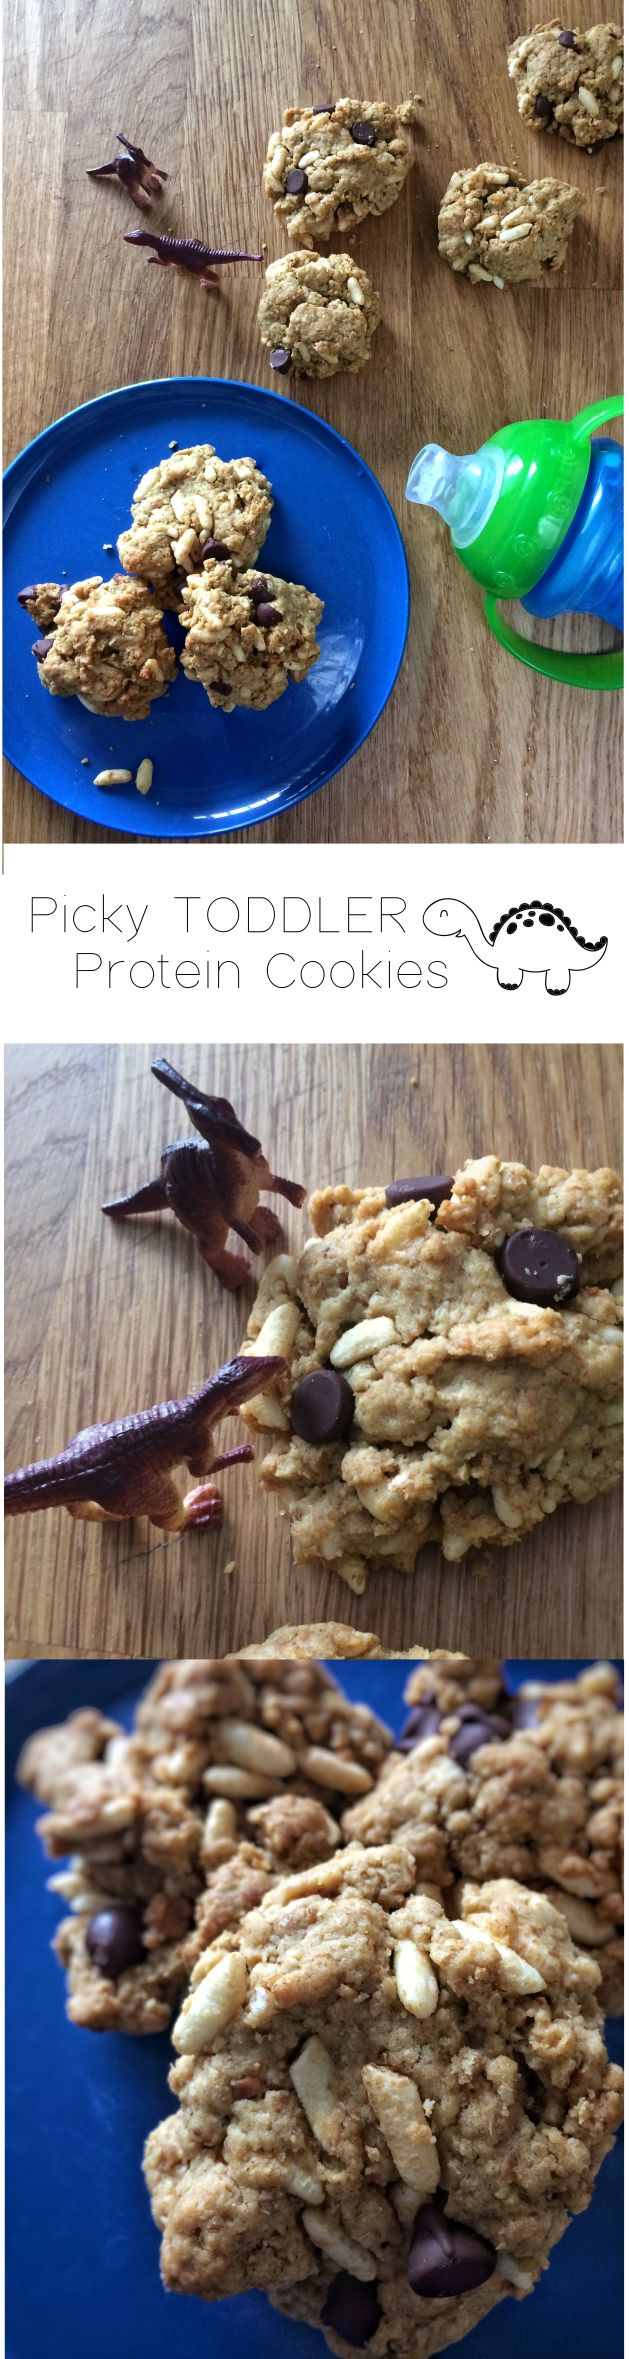 Picky Toddler Protein Cookies - Made with peanut butter, fortified infant cereal, and whole wheat flour, this tasty cookie recipe to help your picky toddlers get the iron they need.